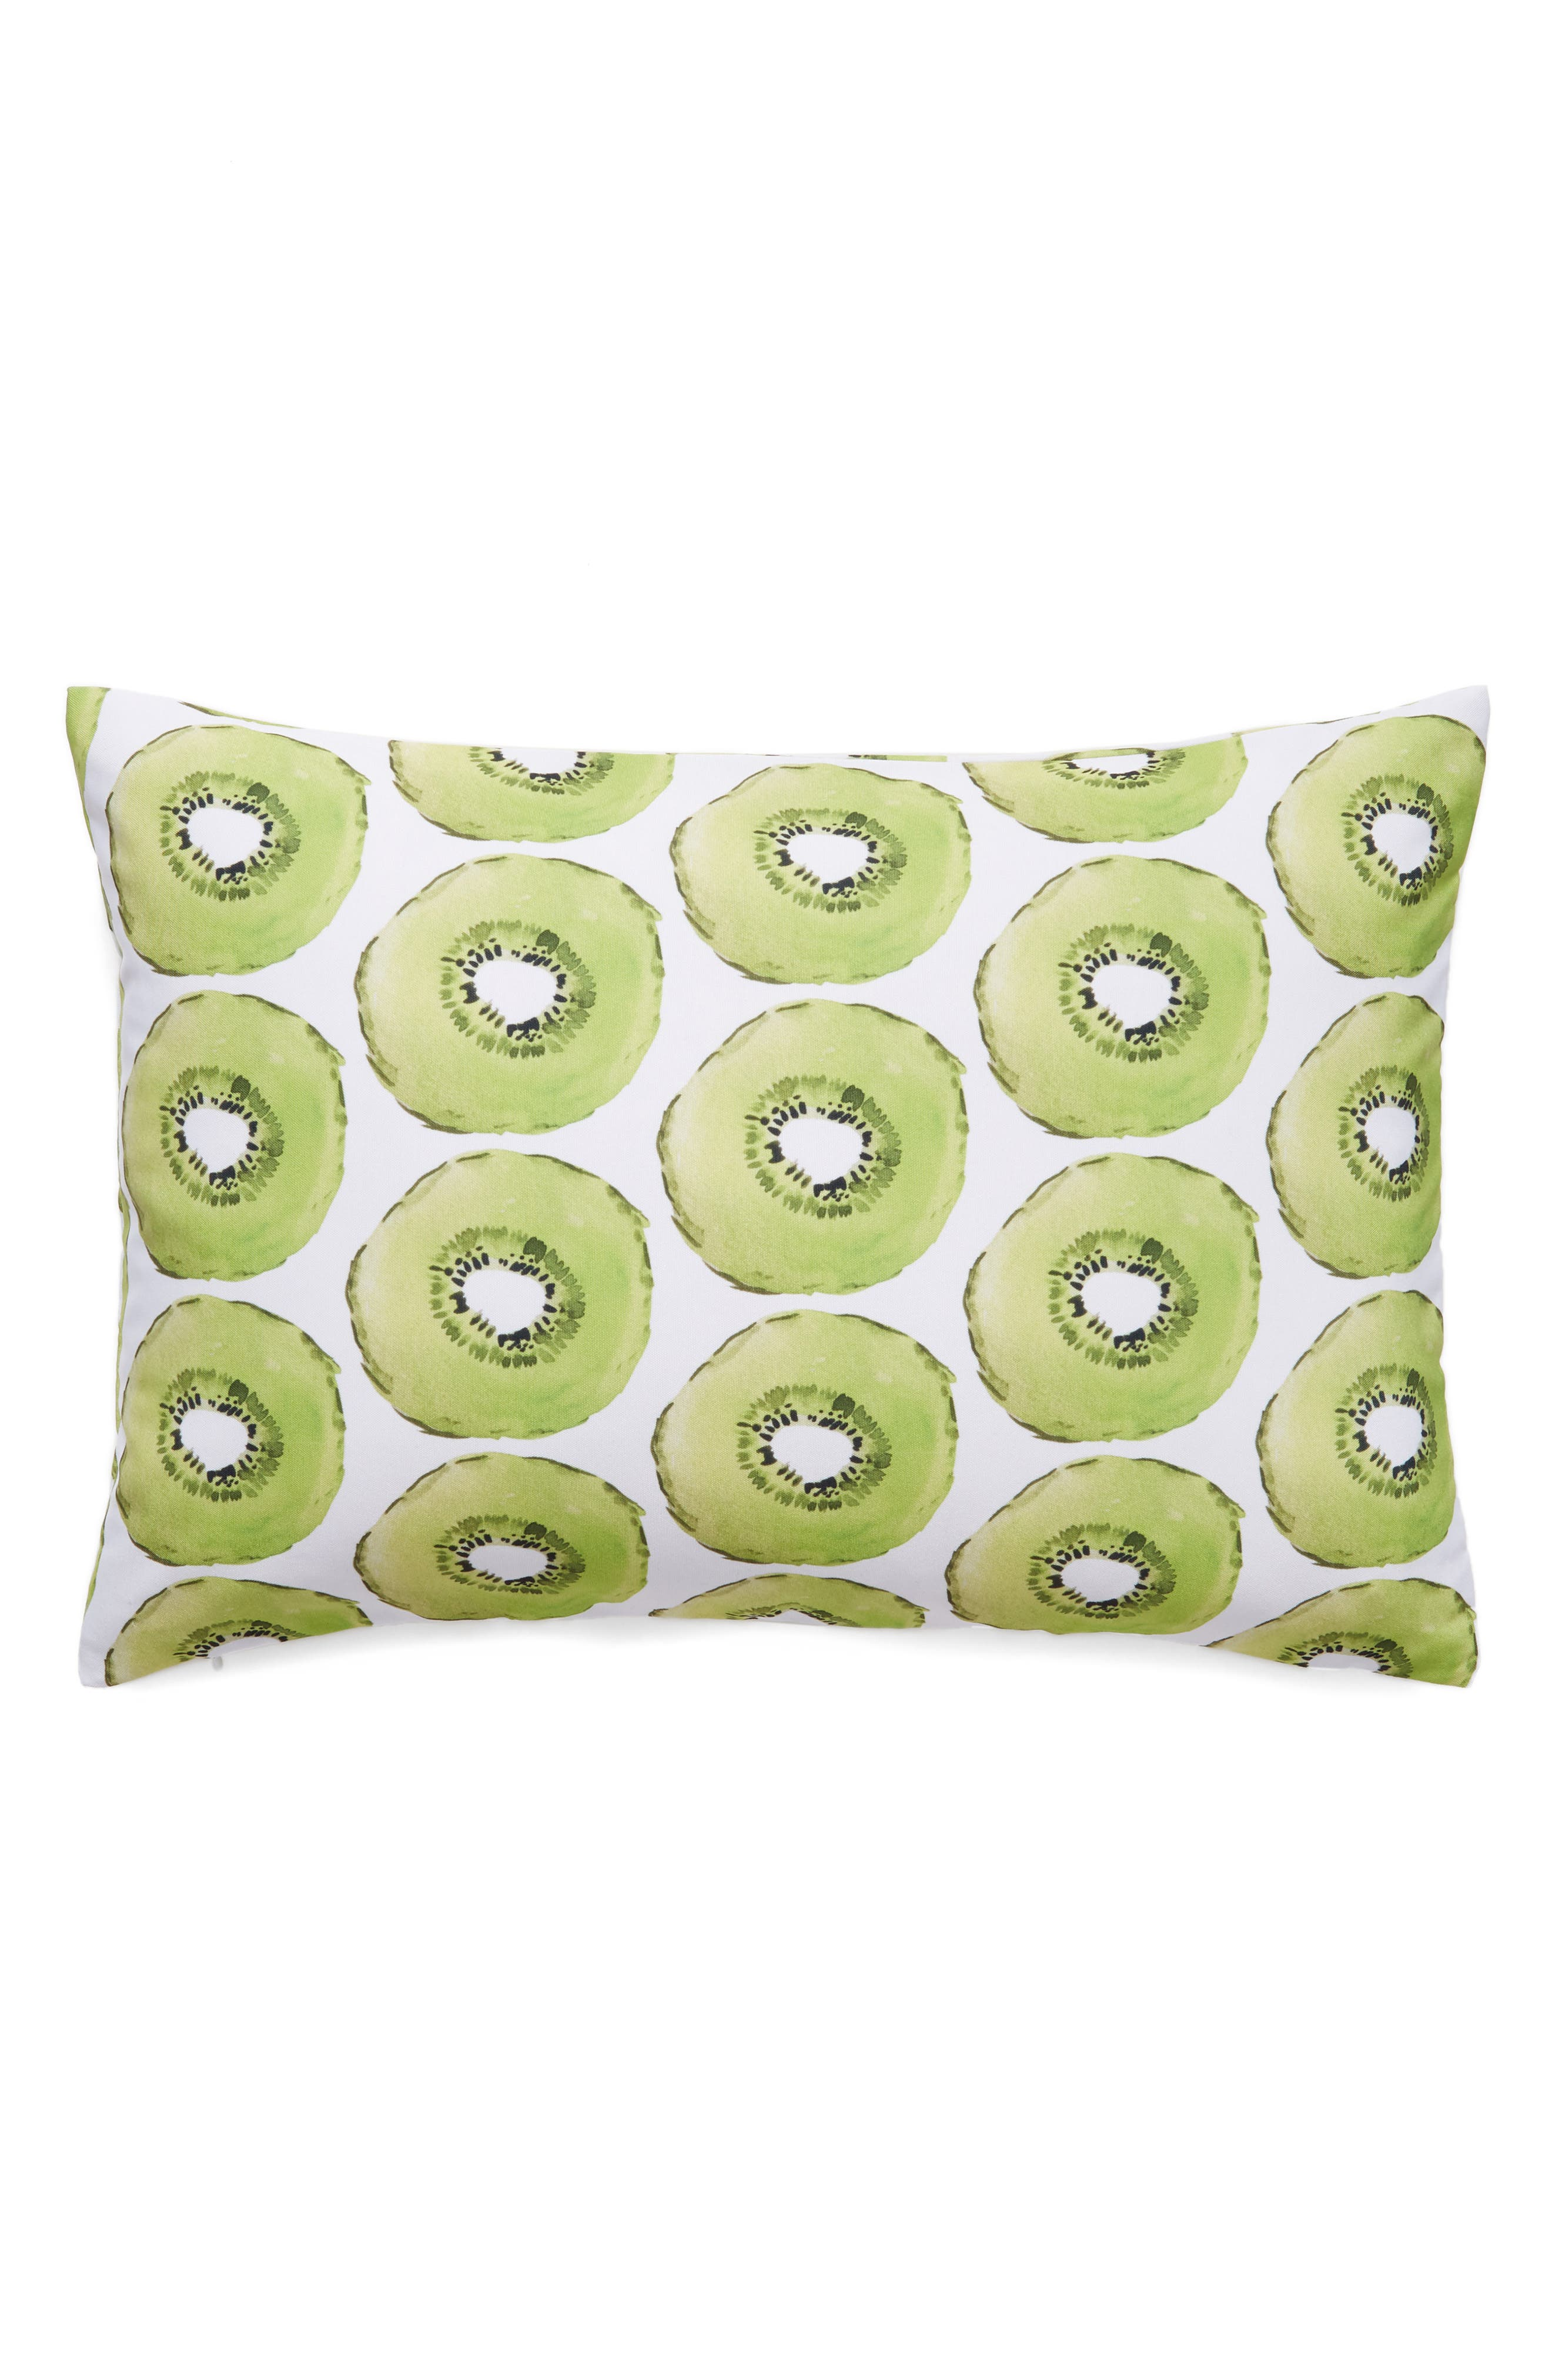 Kiwi Accent Pillow,                             Main thumbnail 1, color,                             300